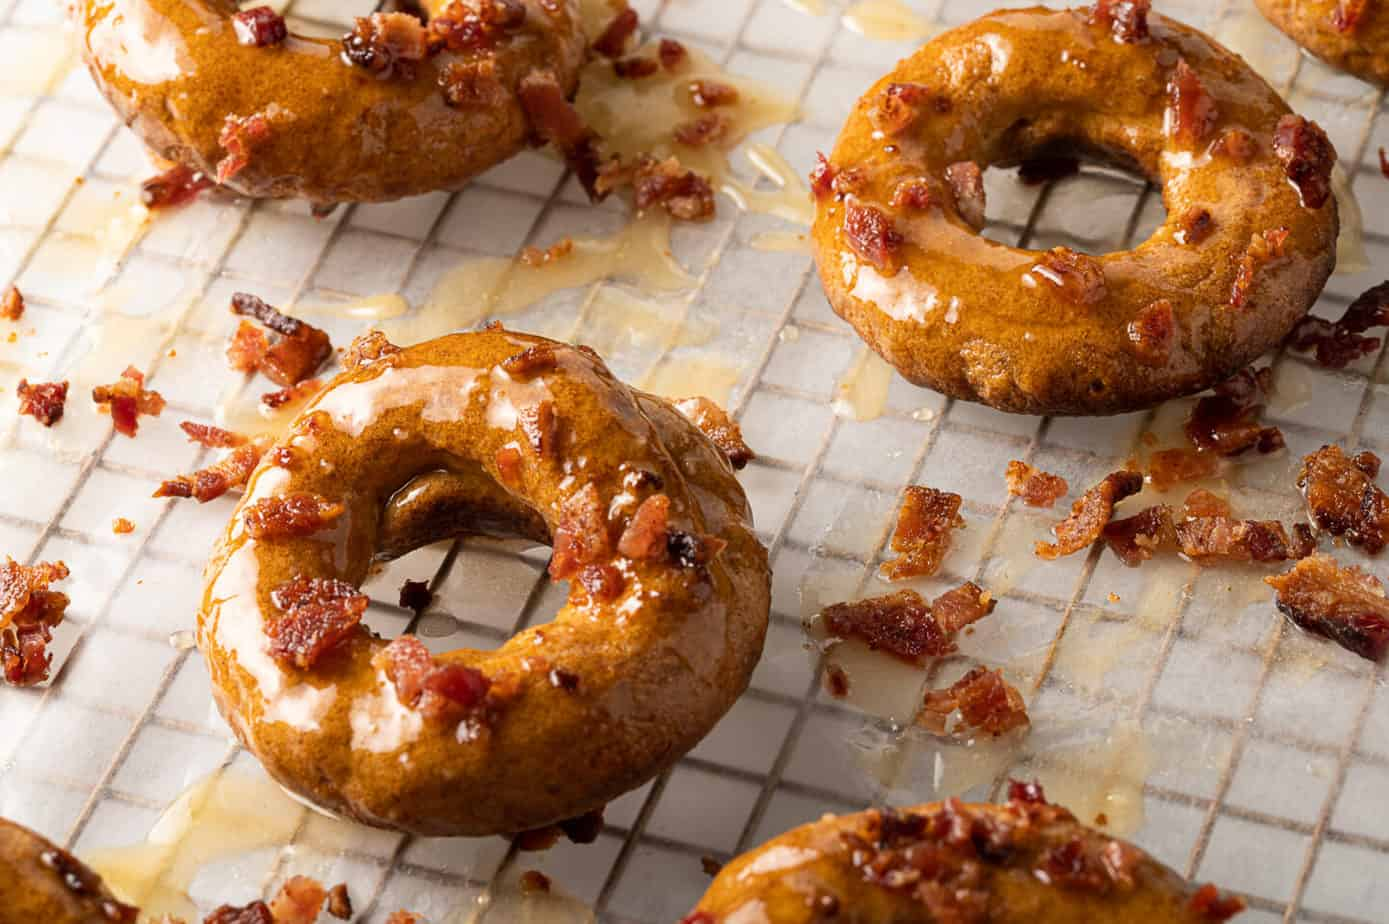 maple bacon donuts on wire rack